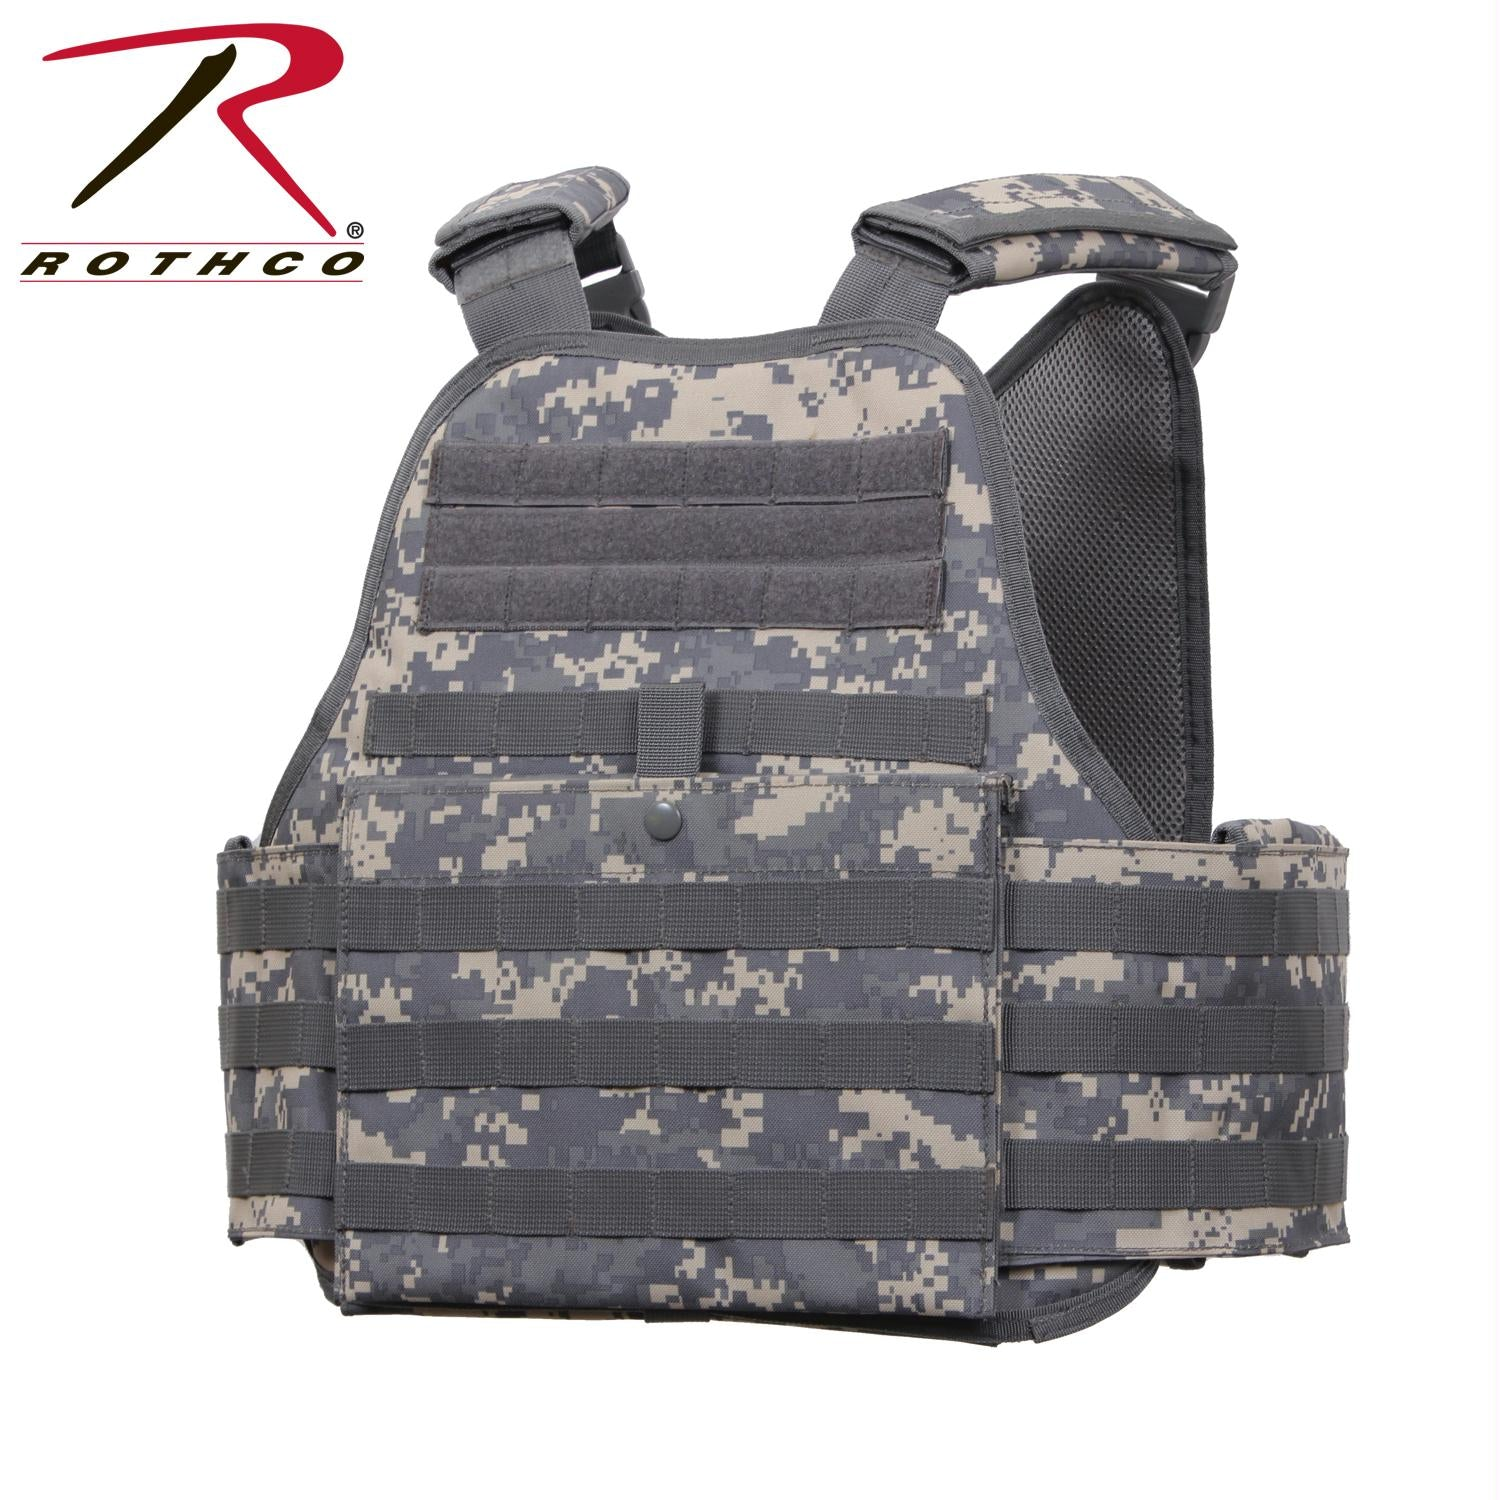 Rothco MOLLE Plate Carrier Vest - ACU Digital Camo / Regular